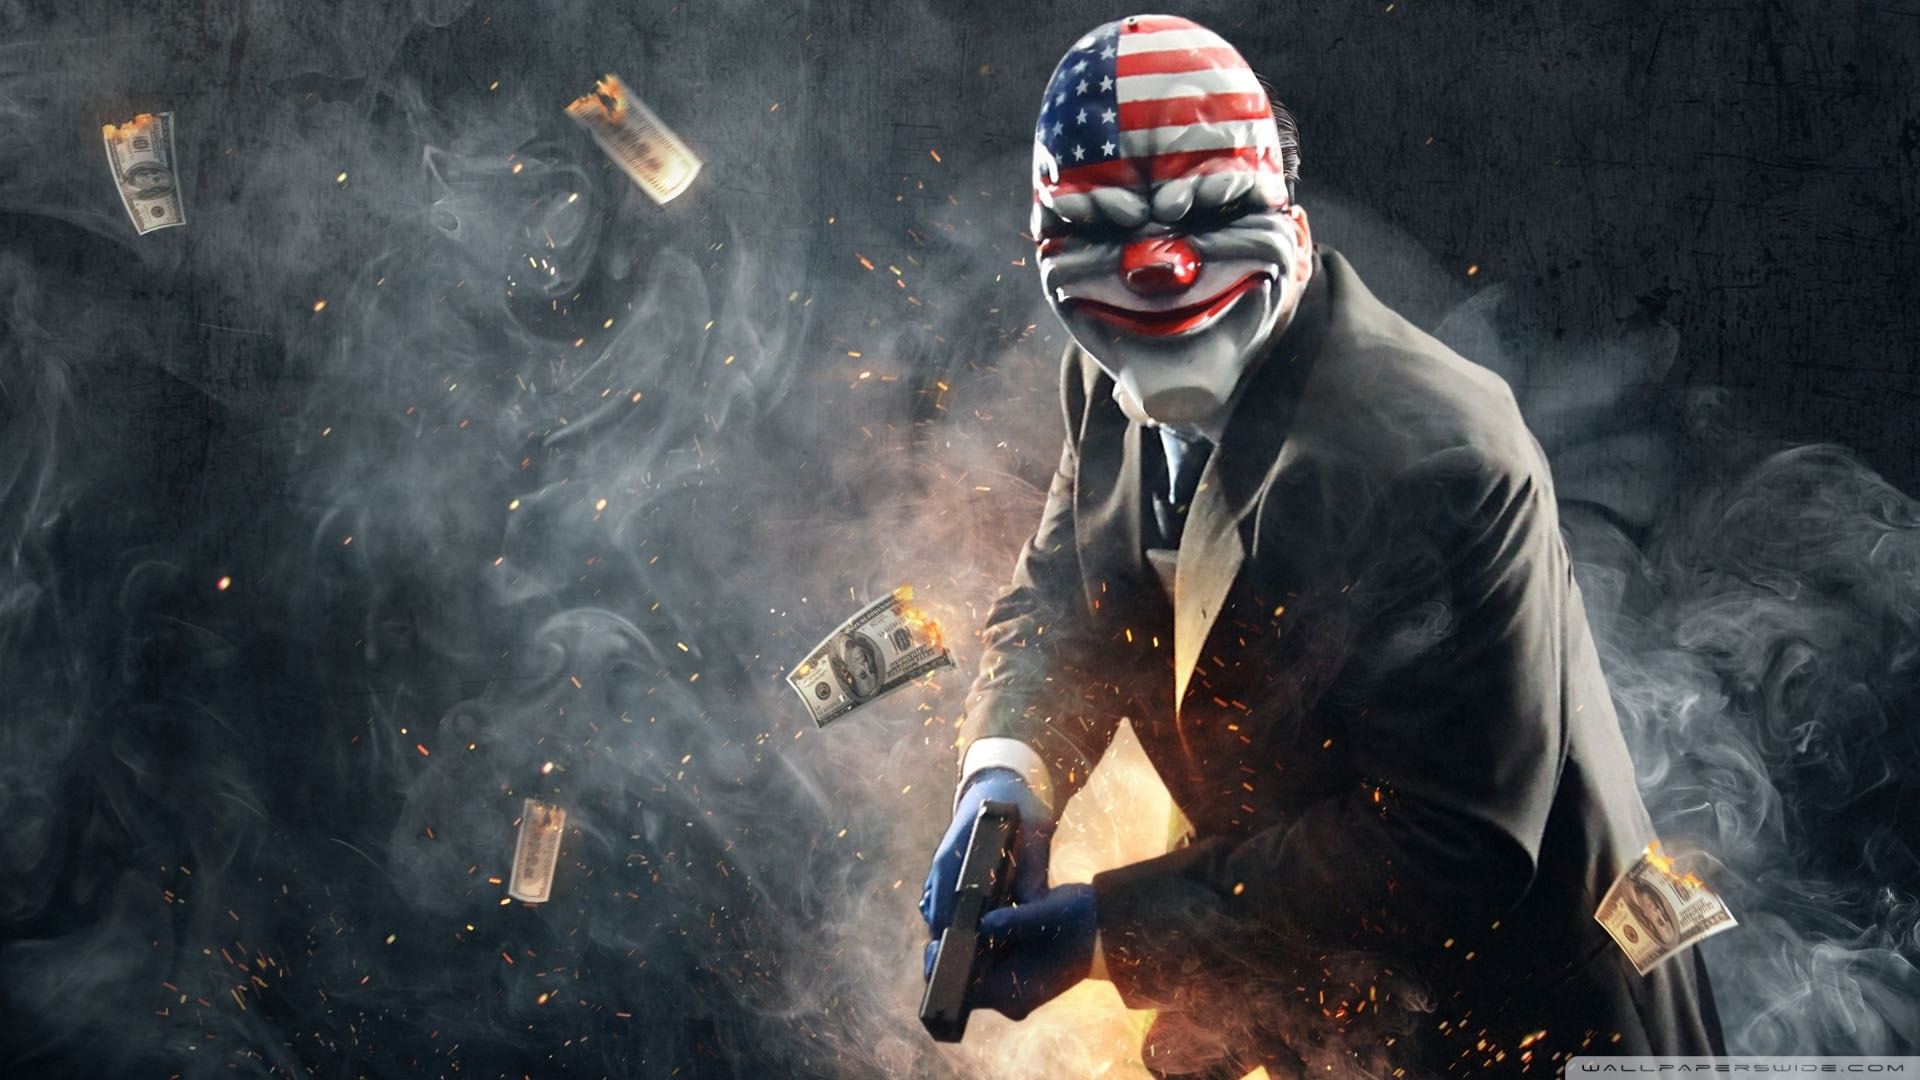 10 Most Popular Payday 2 Wallpaper Hd FULL HD 1920×1080 For PC Desktop